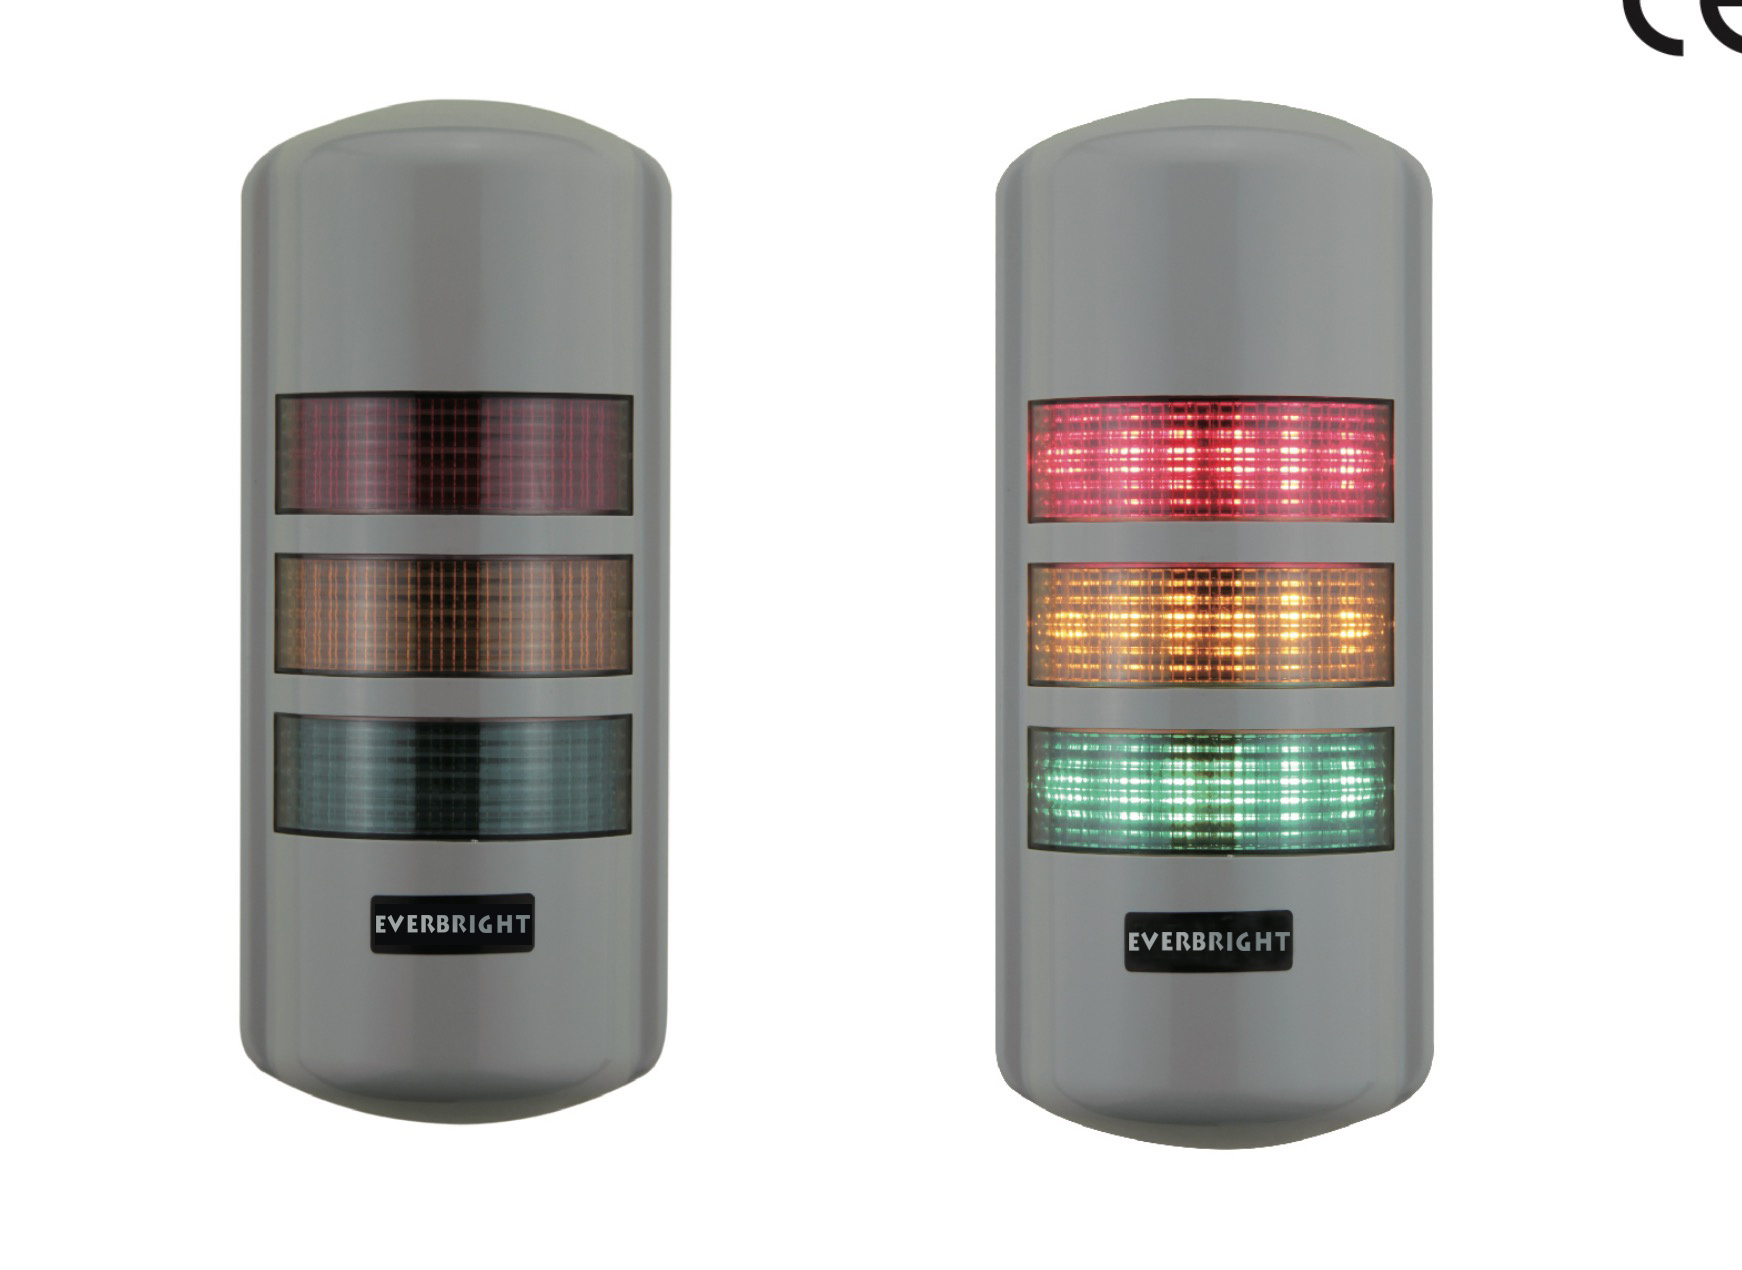 90mm LED Alarm Signal Tower Light with Buzzer, Stack Signal Tower Light